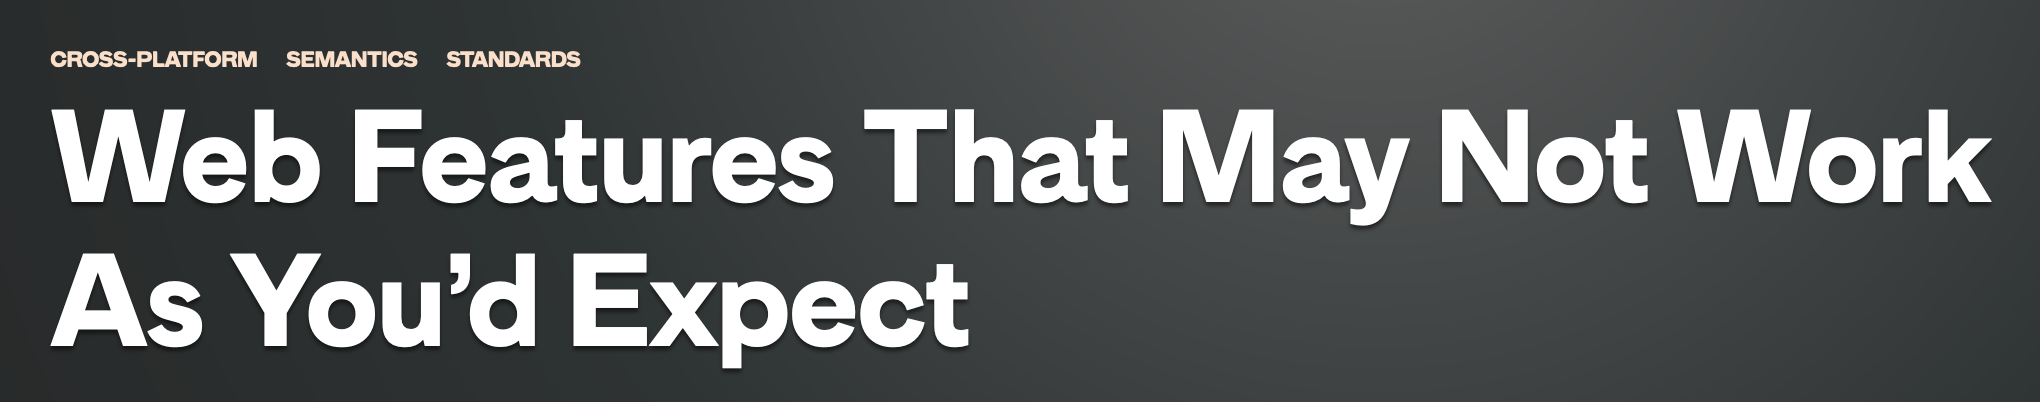 Web Features That May Not Work As You'd Expect